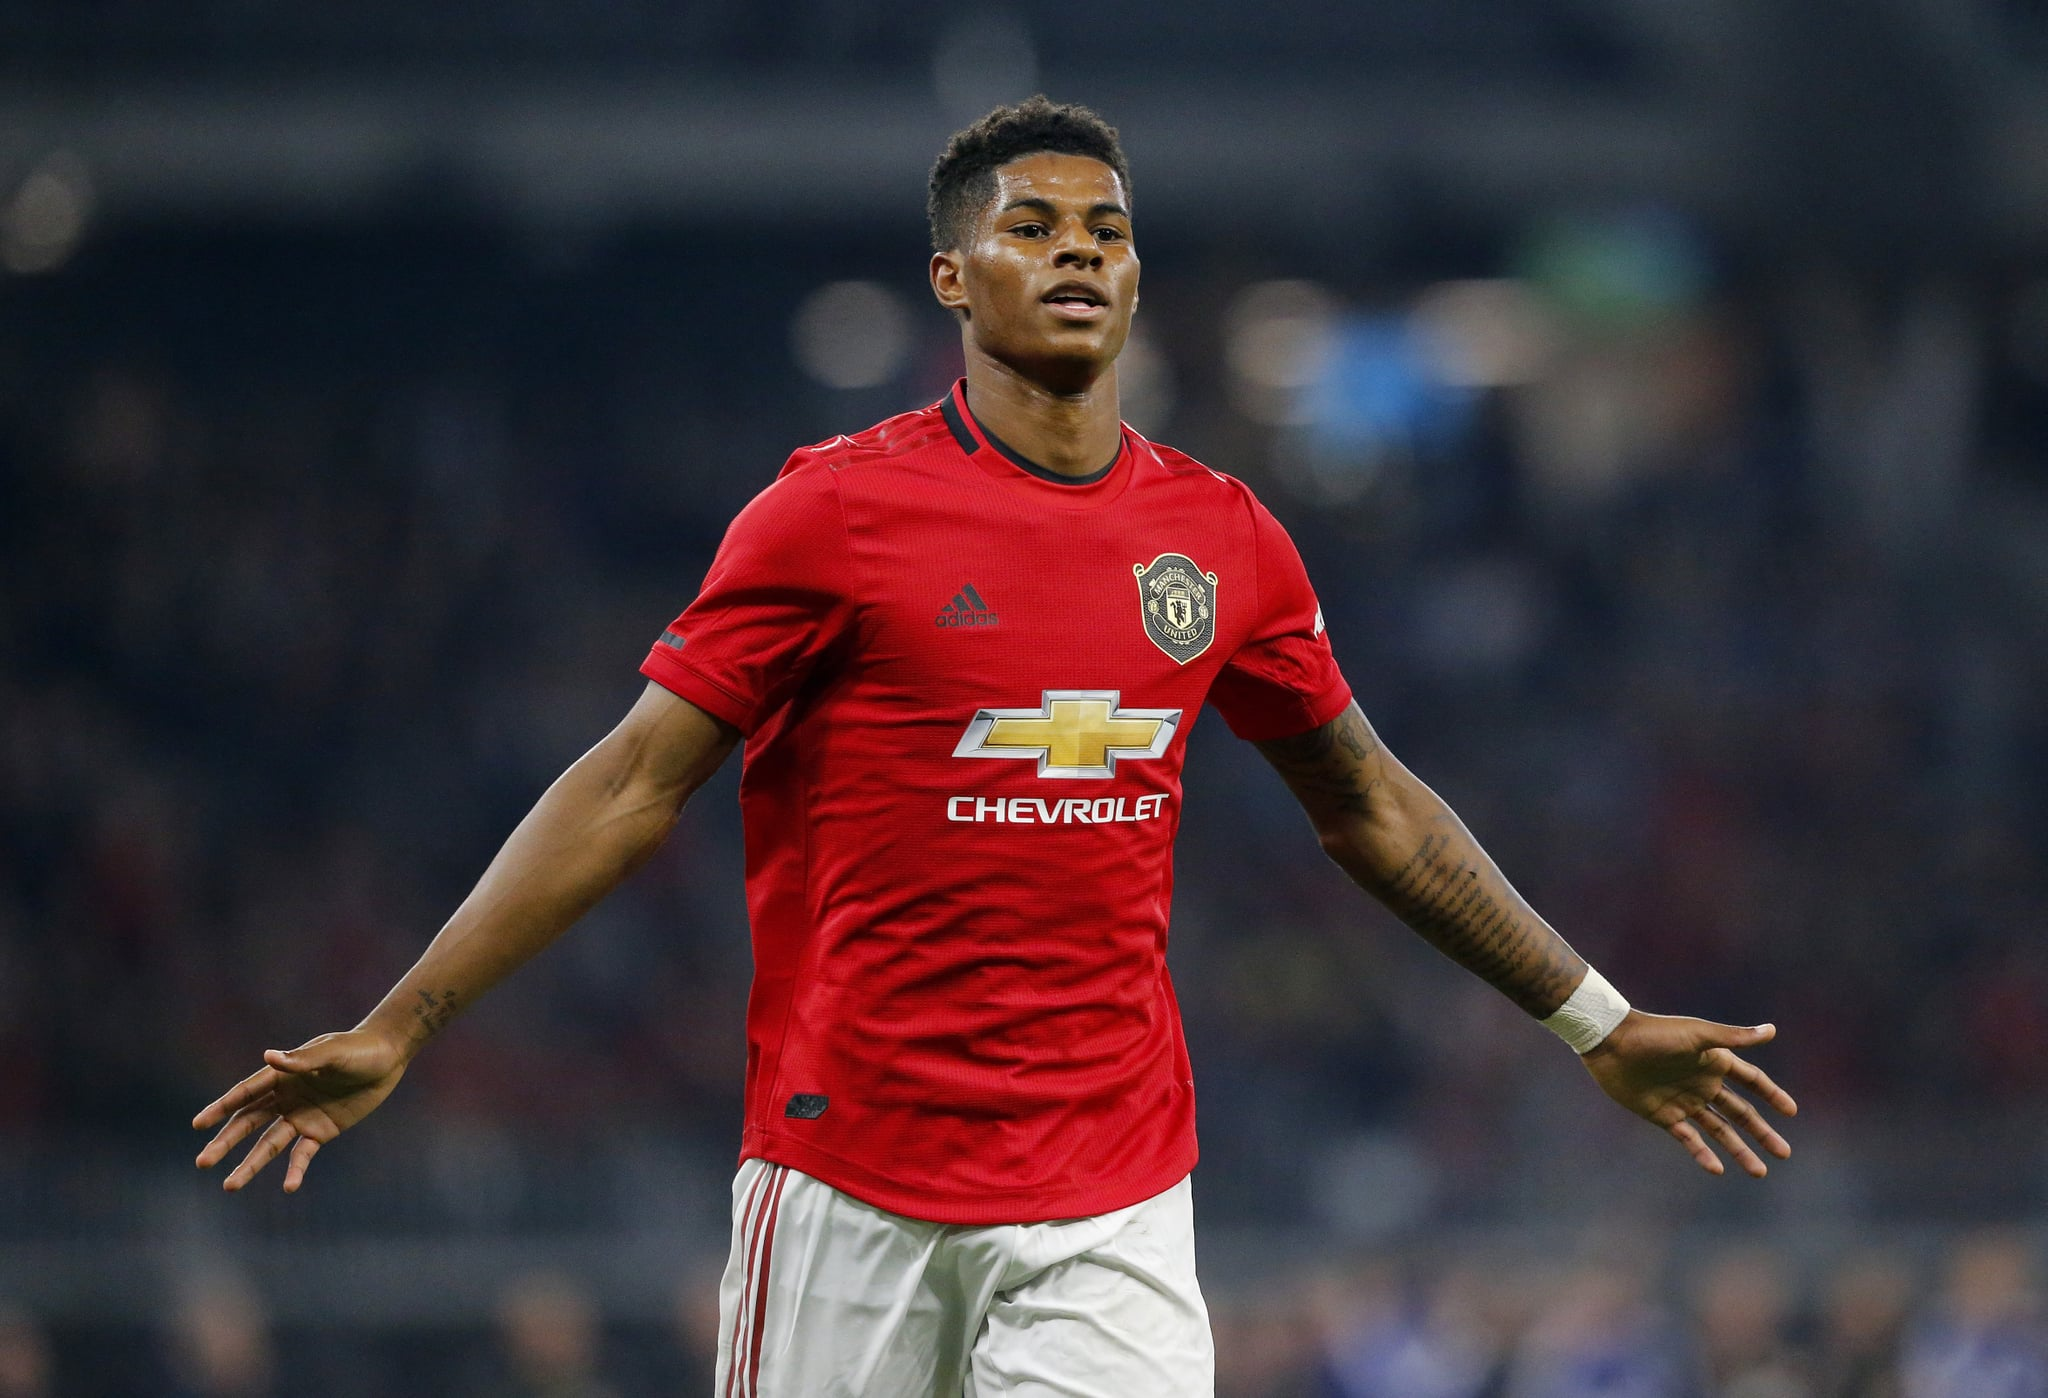 PERTH, AUSTRALIA - JULY 17: Marcus Rashford of Manchester United celebrates his goal during the match between Manchester United and Leeds United at Optus Stadium on July 17, 2019 in Perth, Australia. (Photo by James Worsfold/Getty Images)